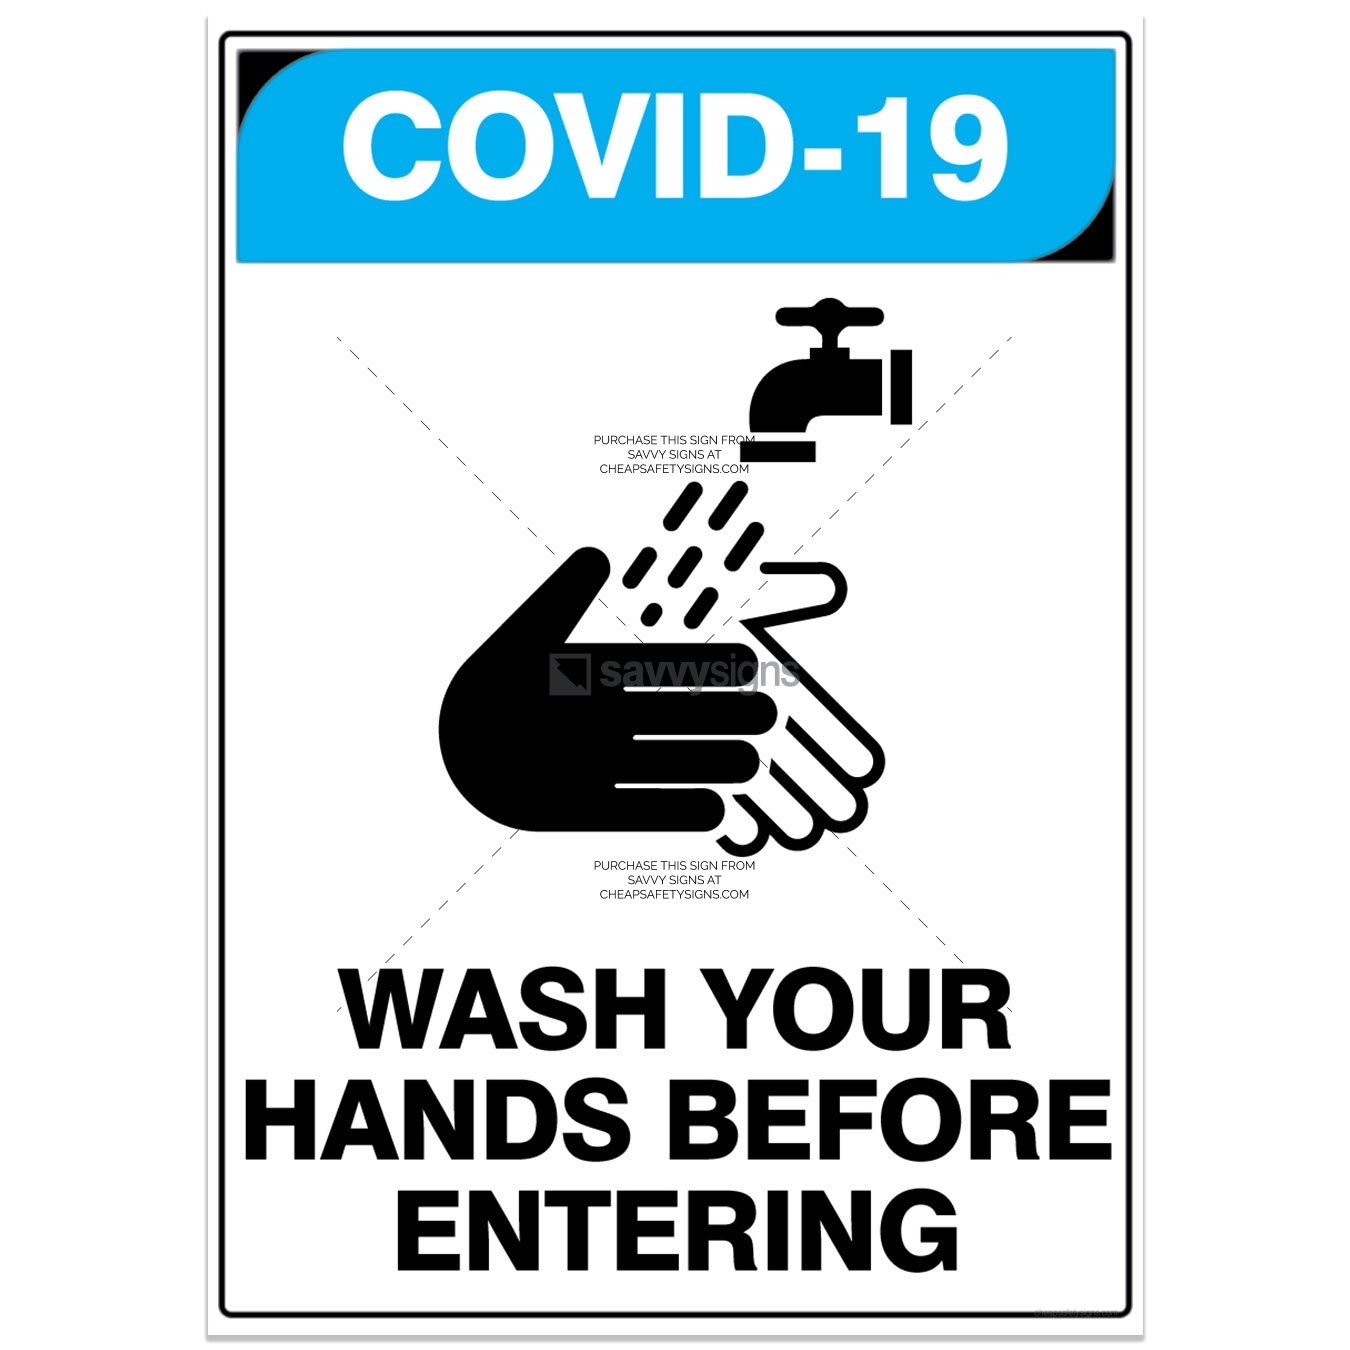 SSCOV3017-COVID19-Wash-Your-Hands-Before-Entering-Savvy-Signs_v1